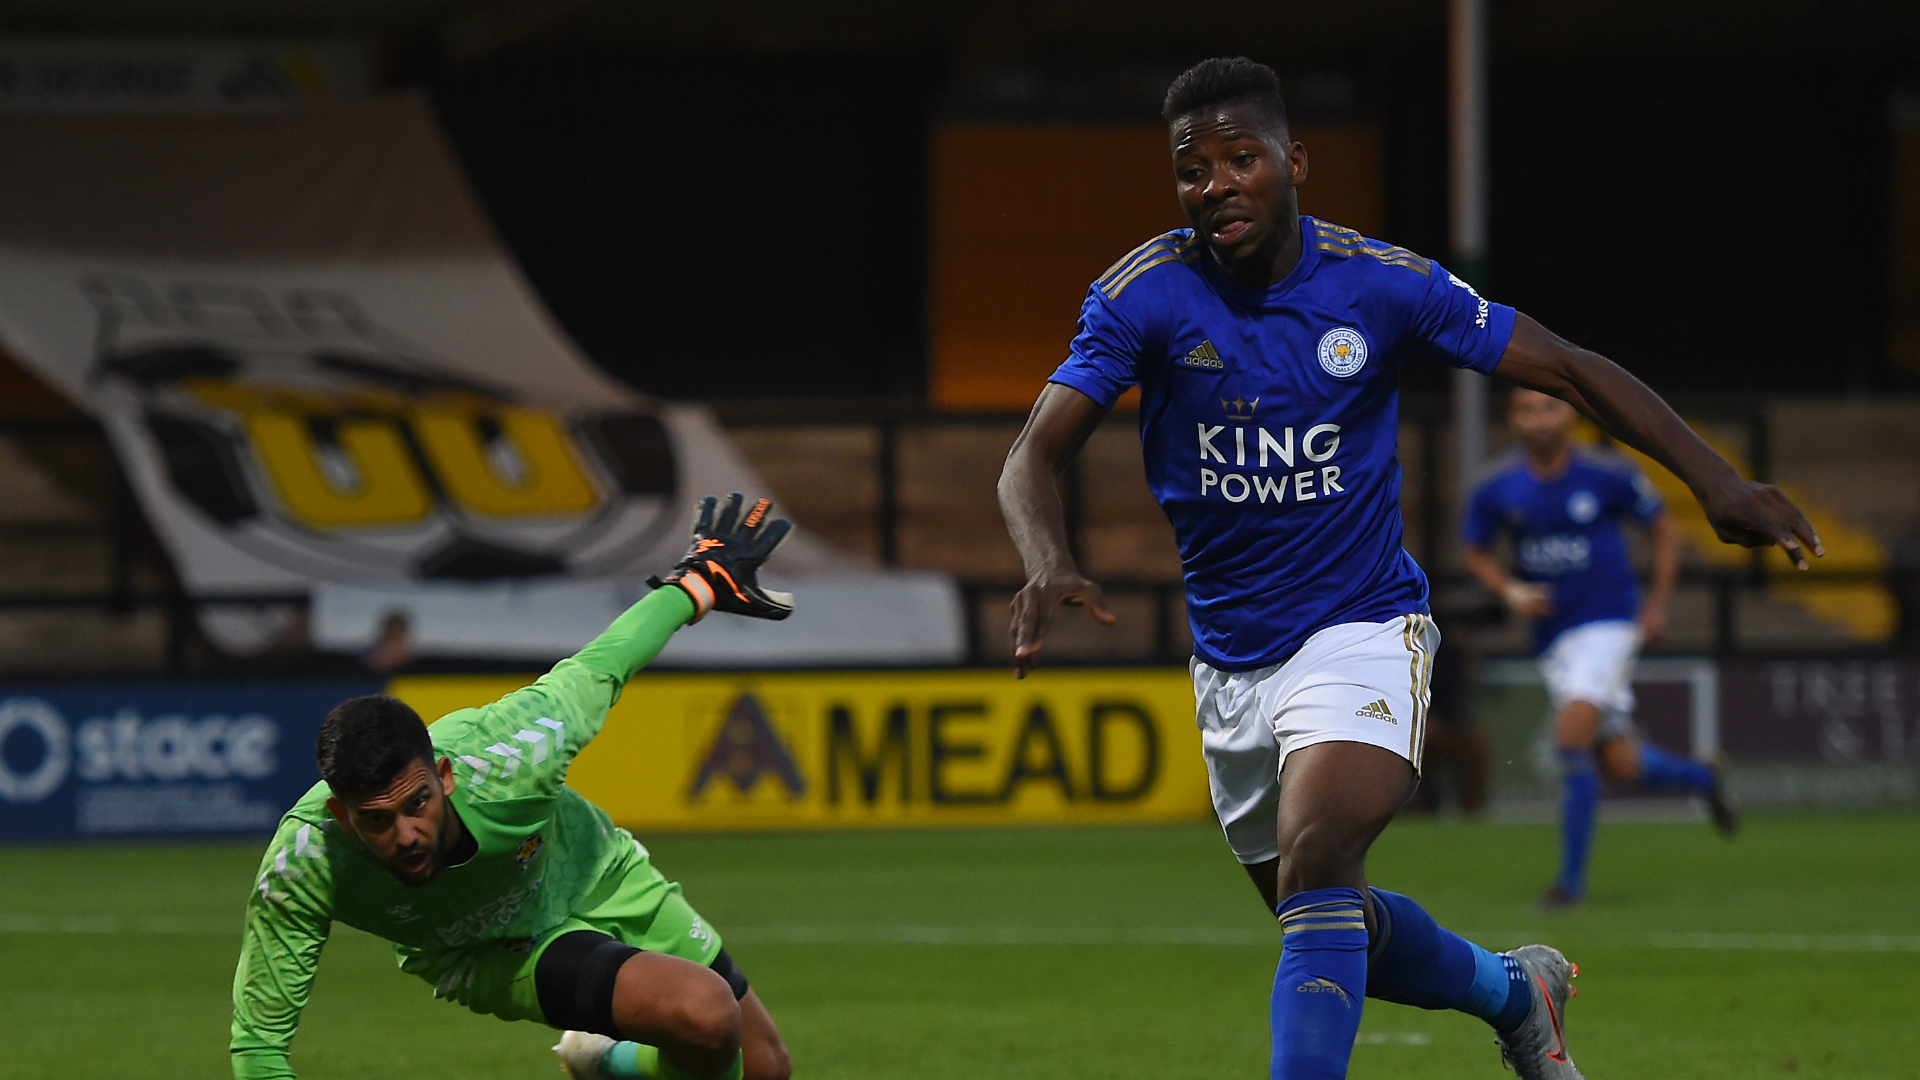 Leicester City striker Iheanacho set for first Premier League game of the season